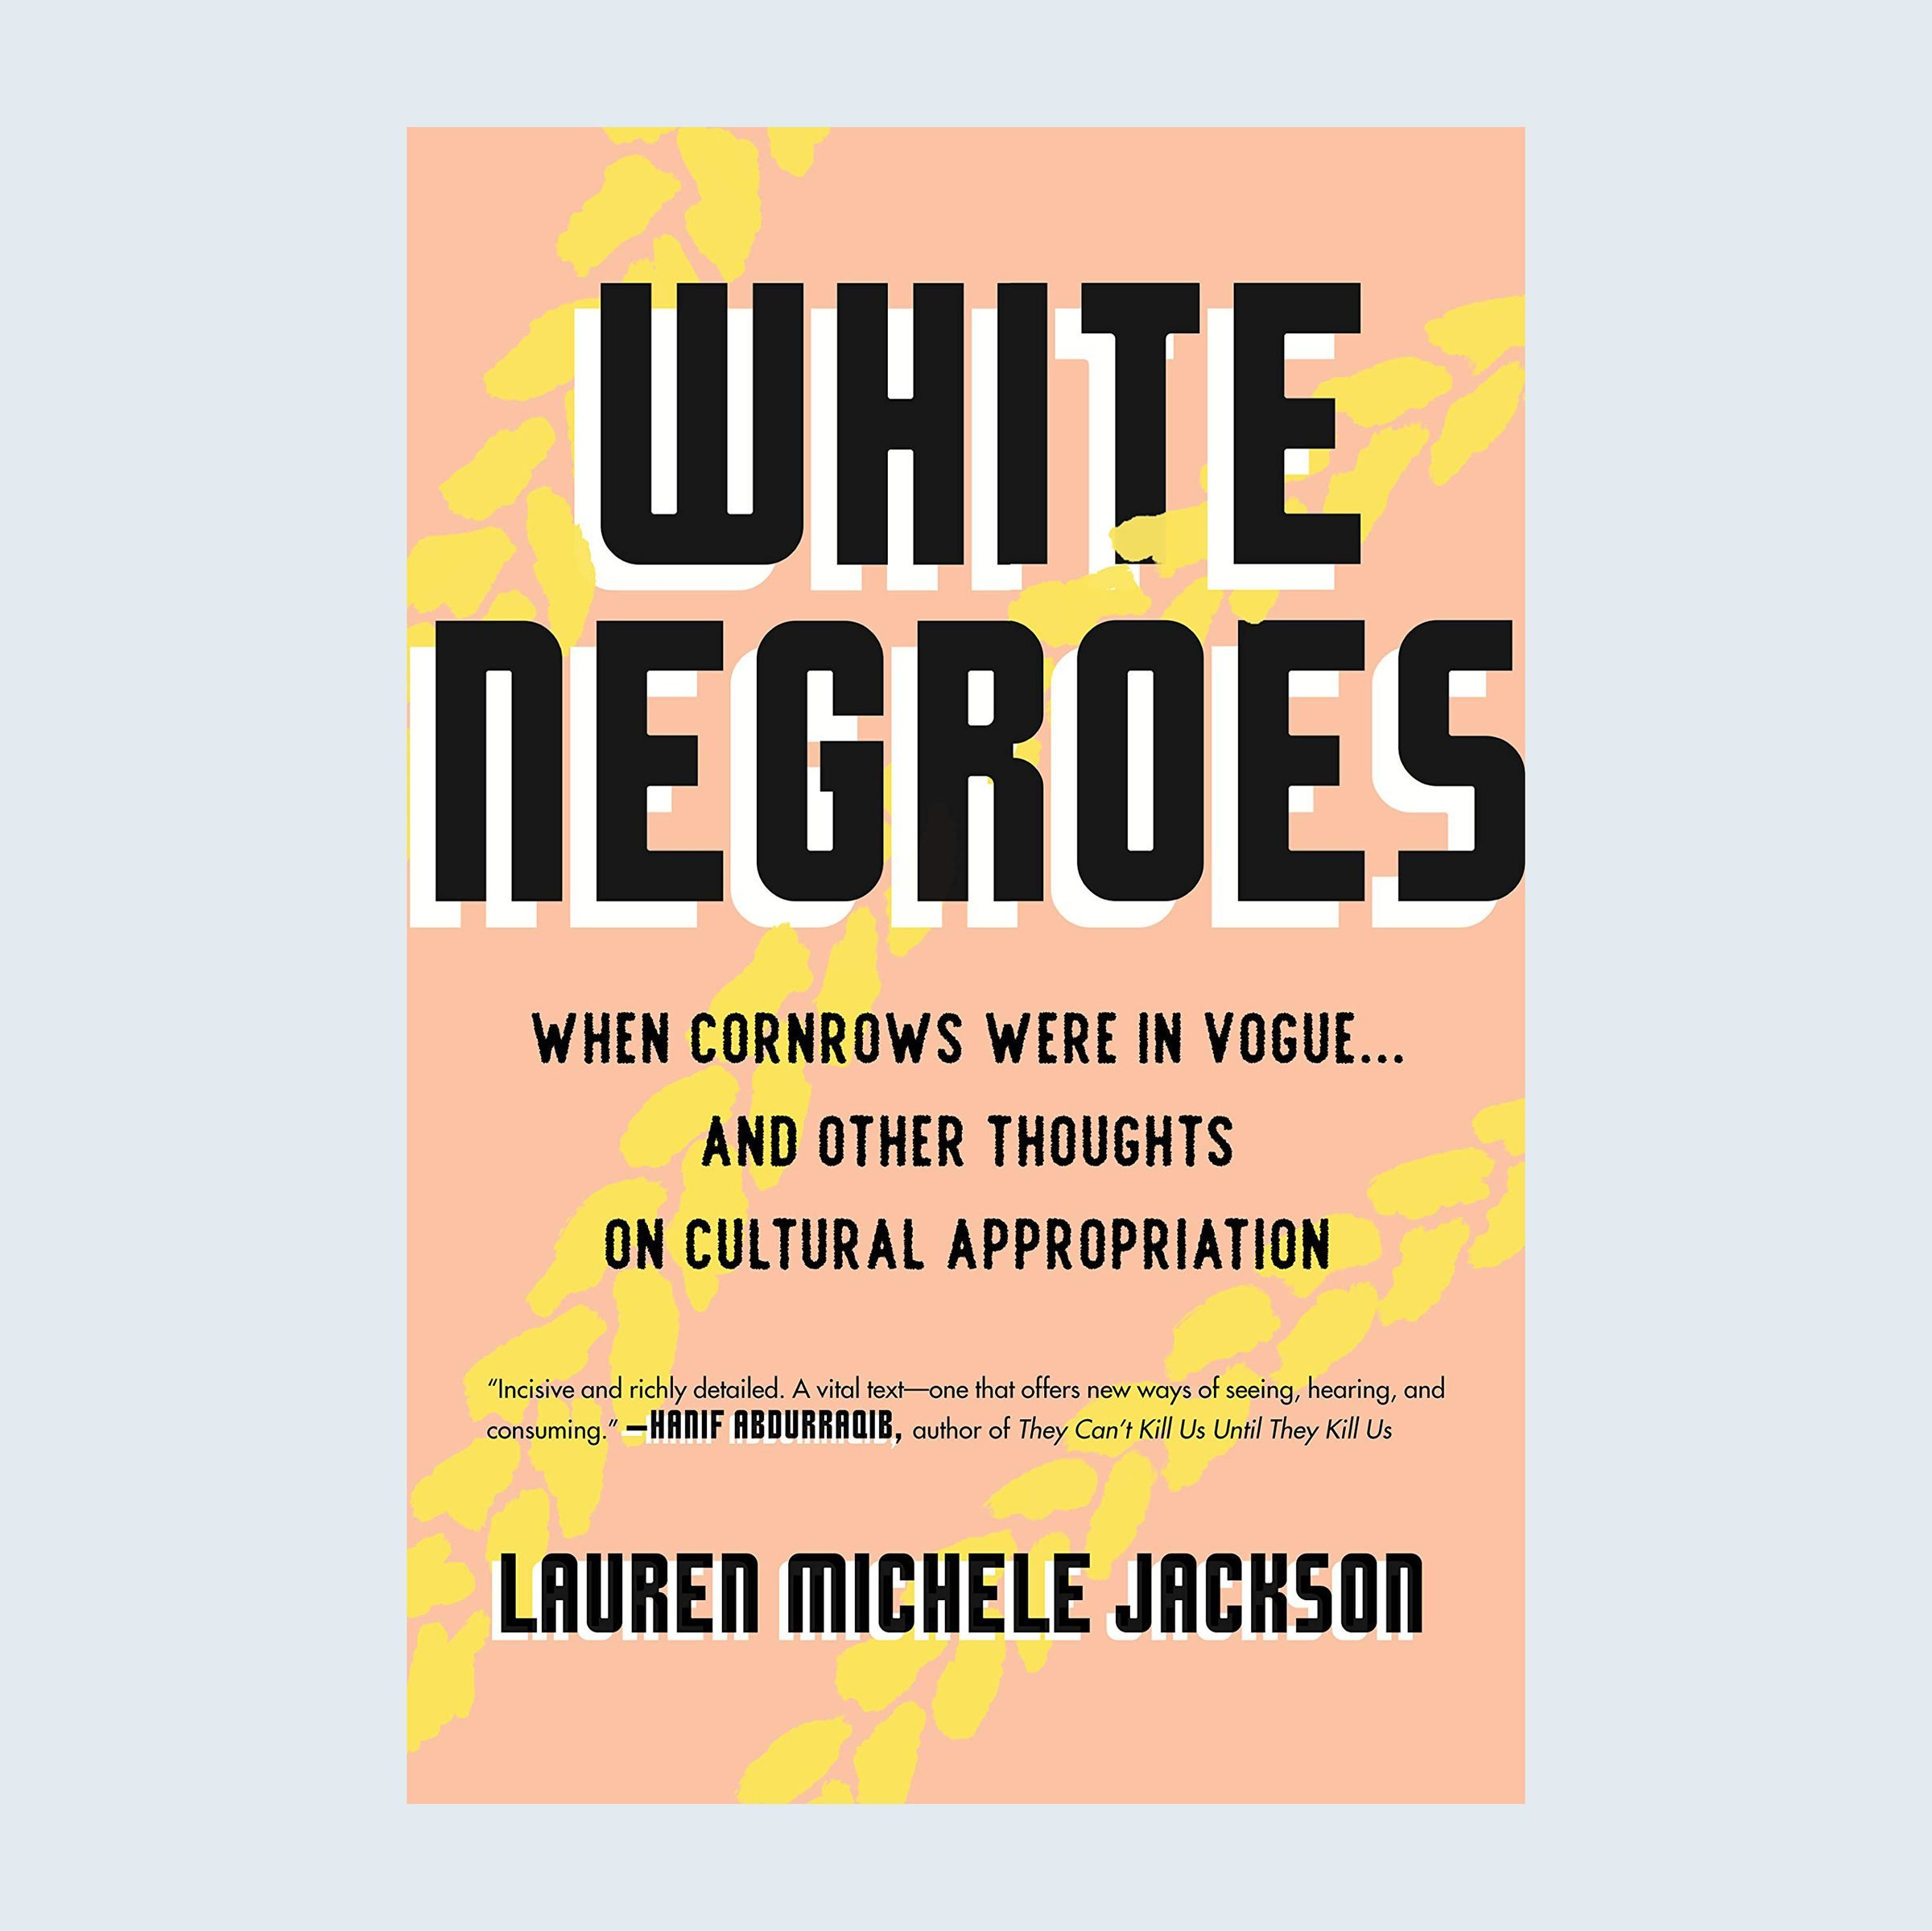 White Negroes: When Cornrows Were in Vogue…and Other Thoughts on Cultural Appropriation by Lauren Michele Jackson